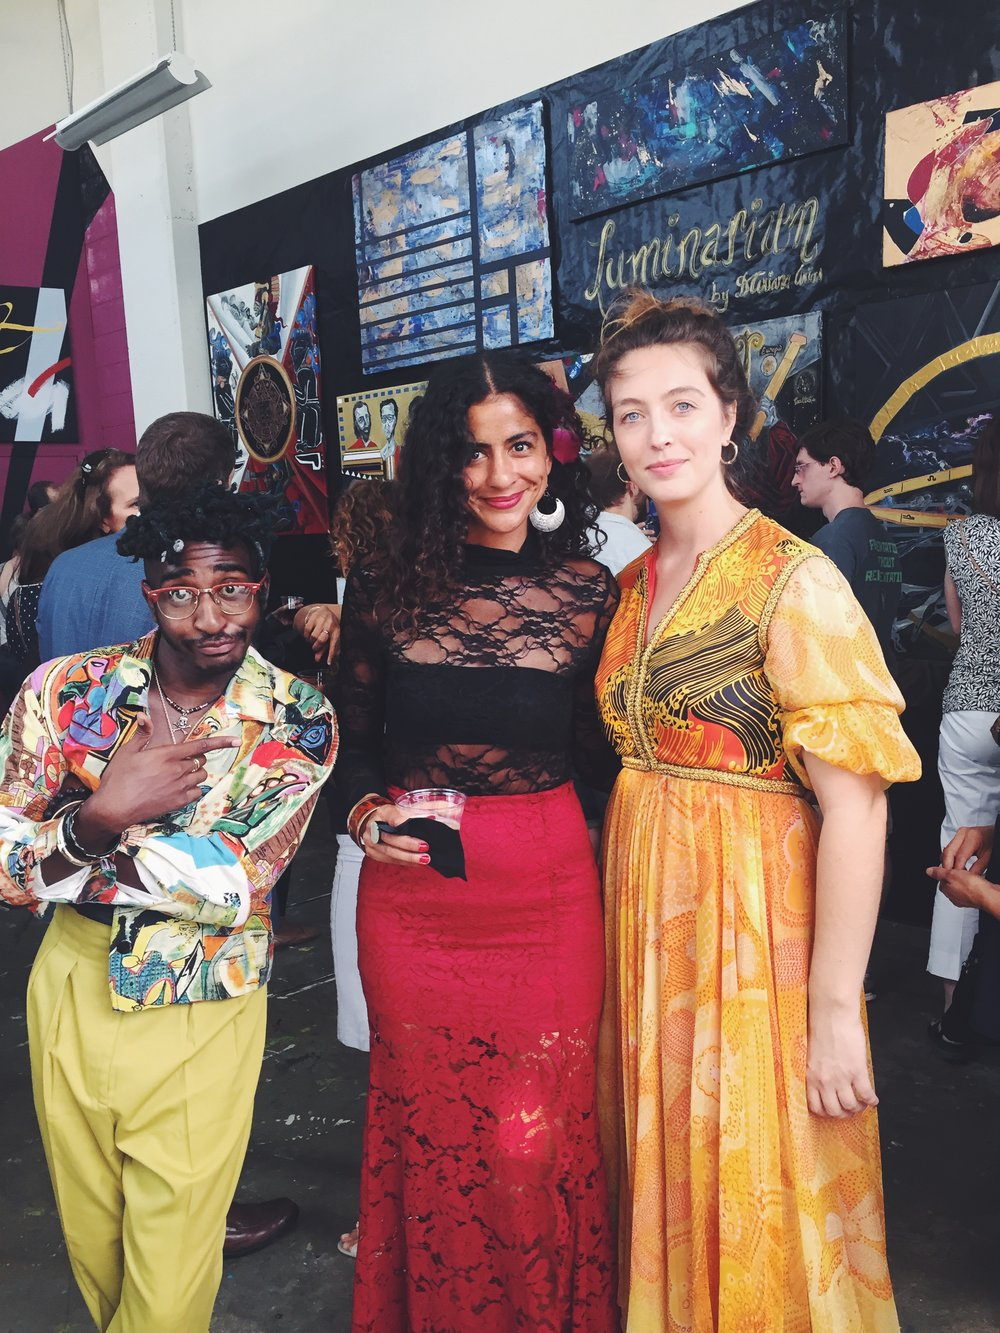 Photo Credit (left to right): Maps Glover, Artist Dariana Arias & Marta Staudinger